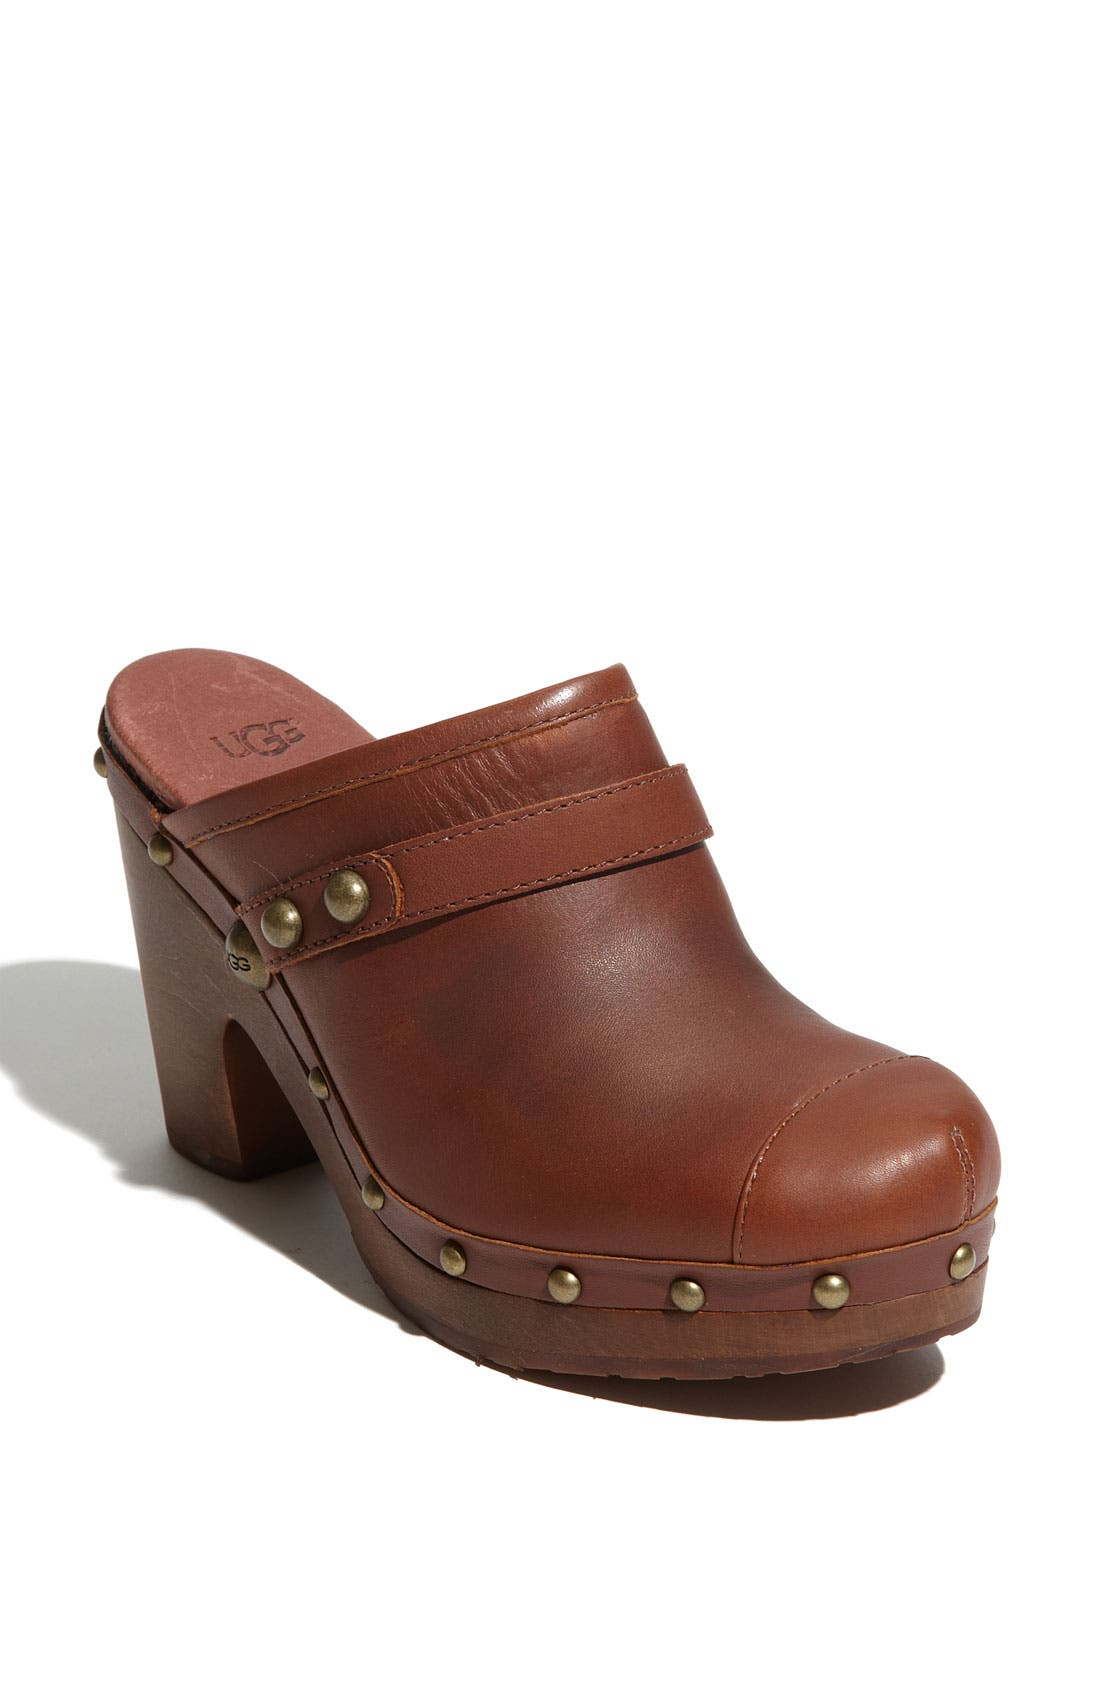 Alternate Image 1 Selected - UGG® Australia 'Jolene' Clog